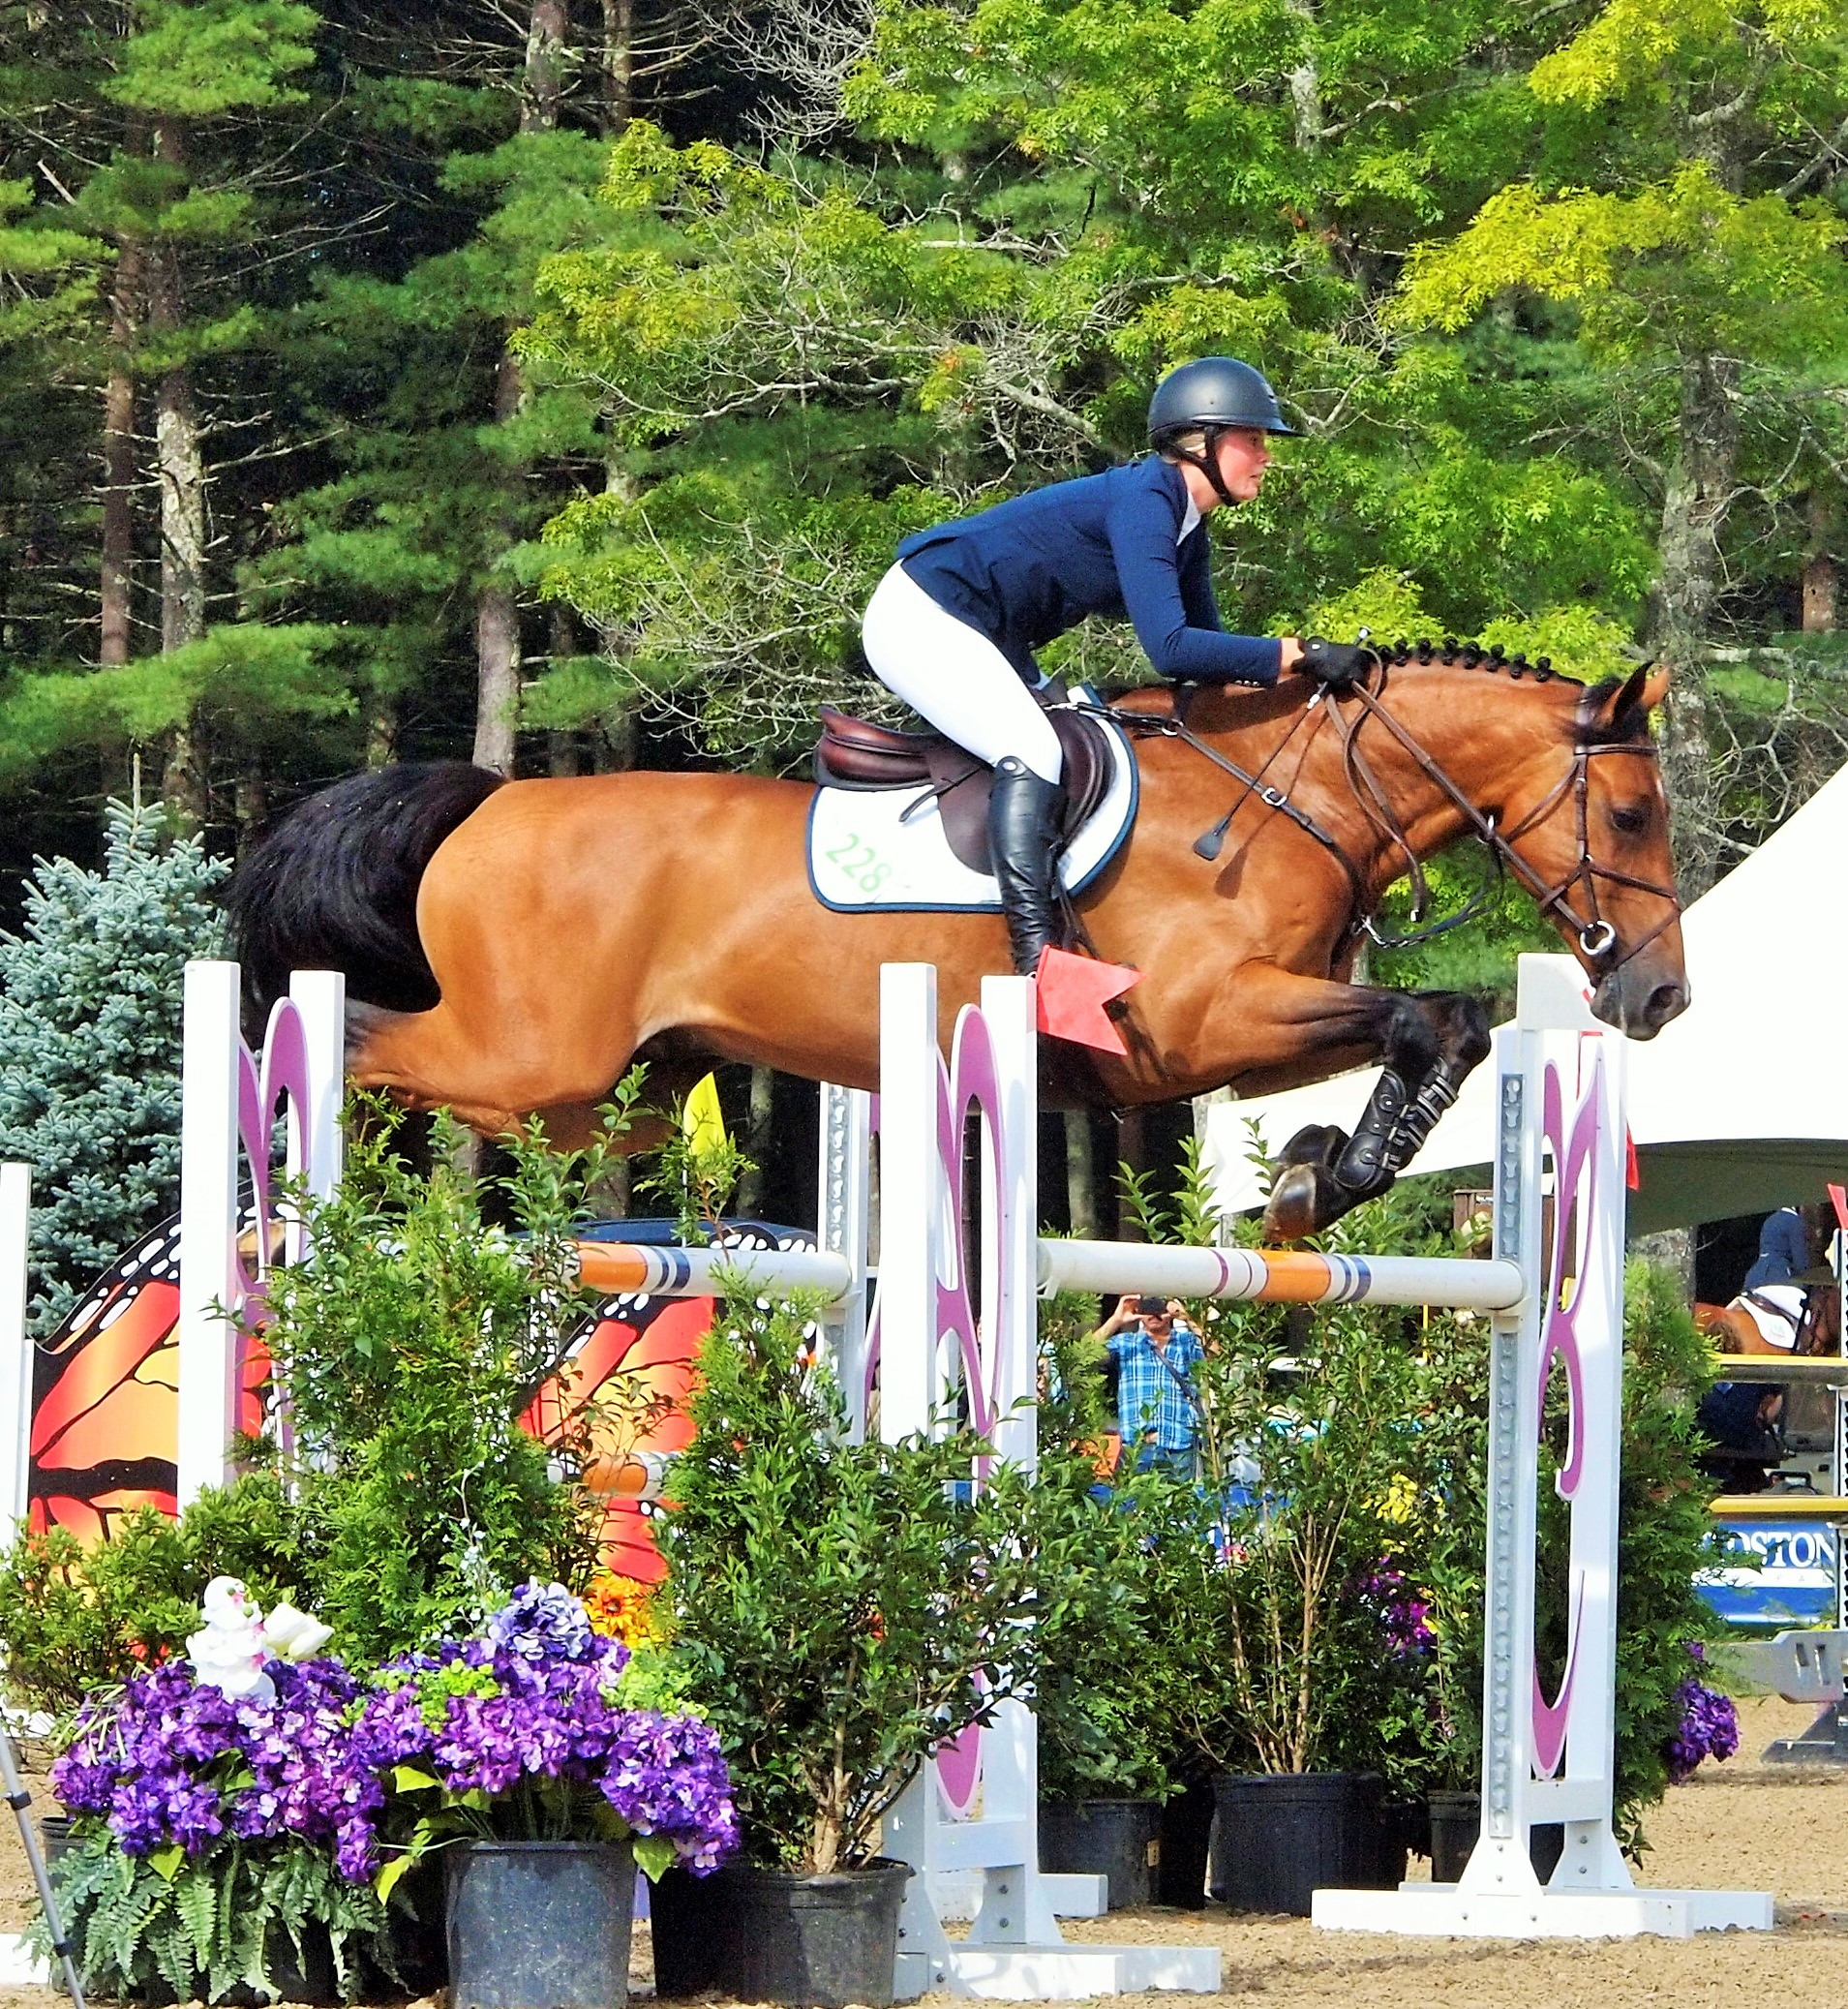 Horse Show Jumping Photography Photo Net Photography Forums